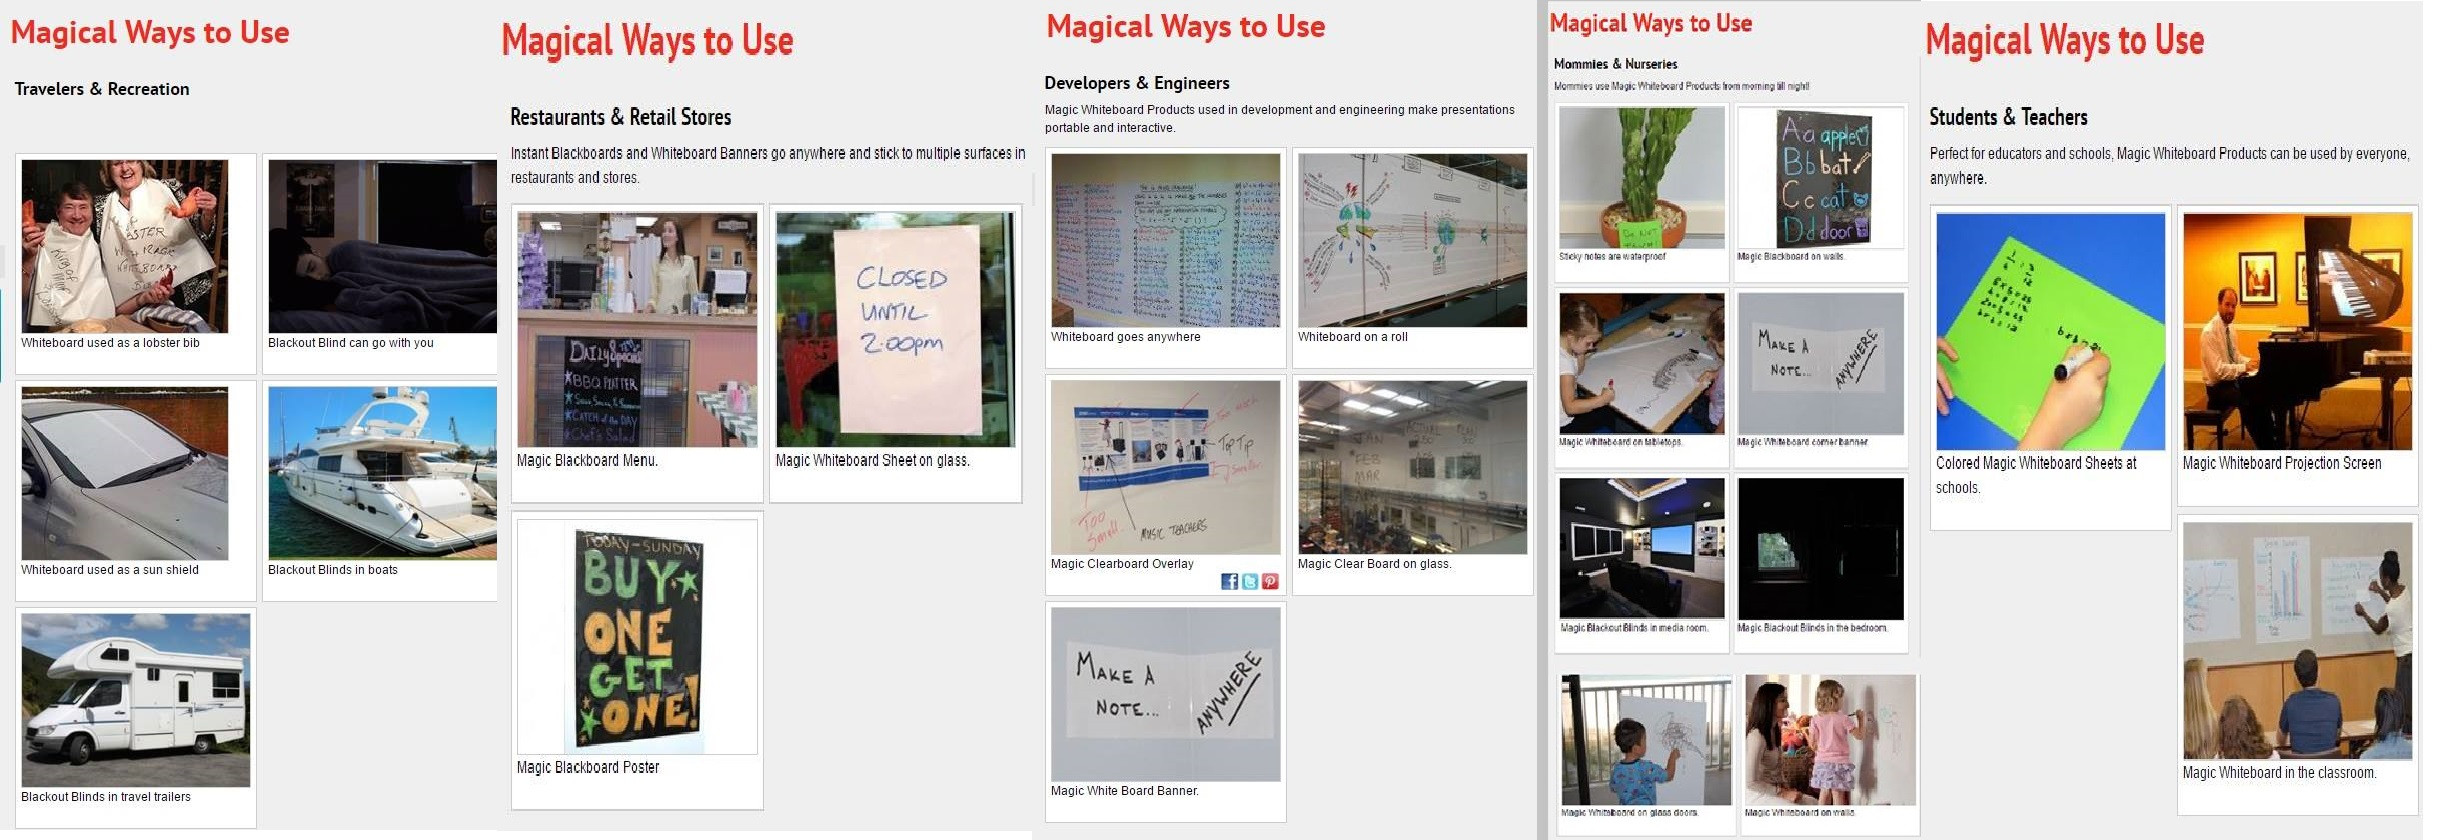 Recycle-Reduce-Reuse MAGIC WHITEBOARD